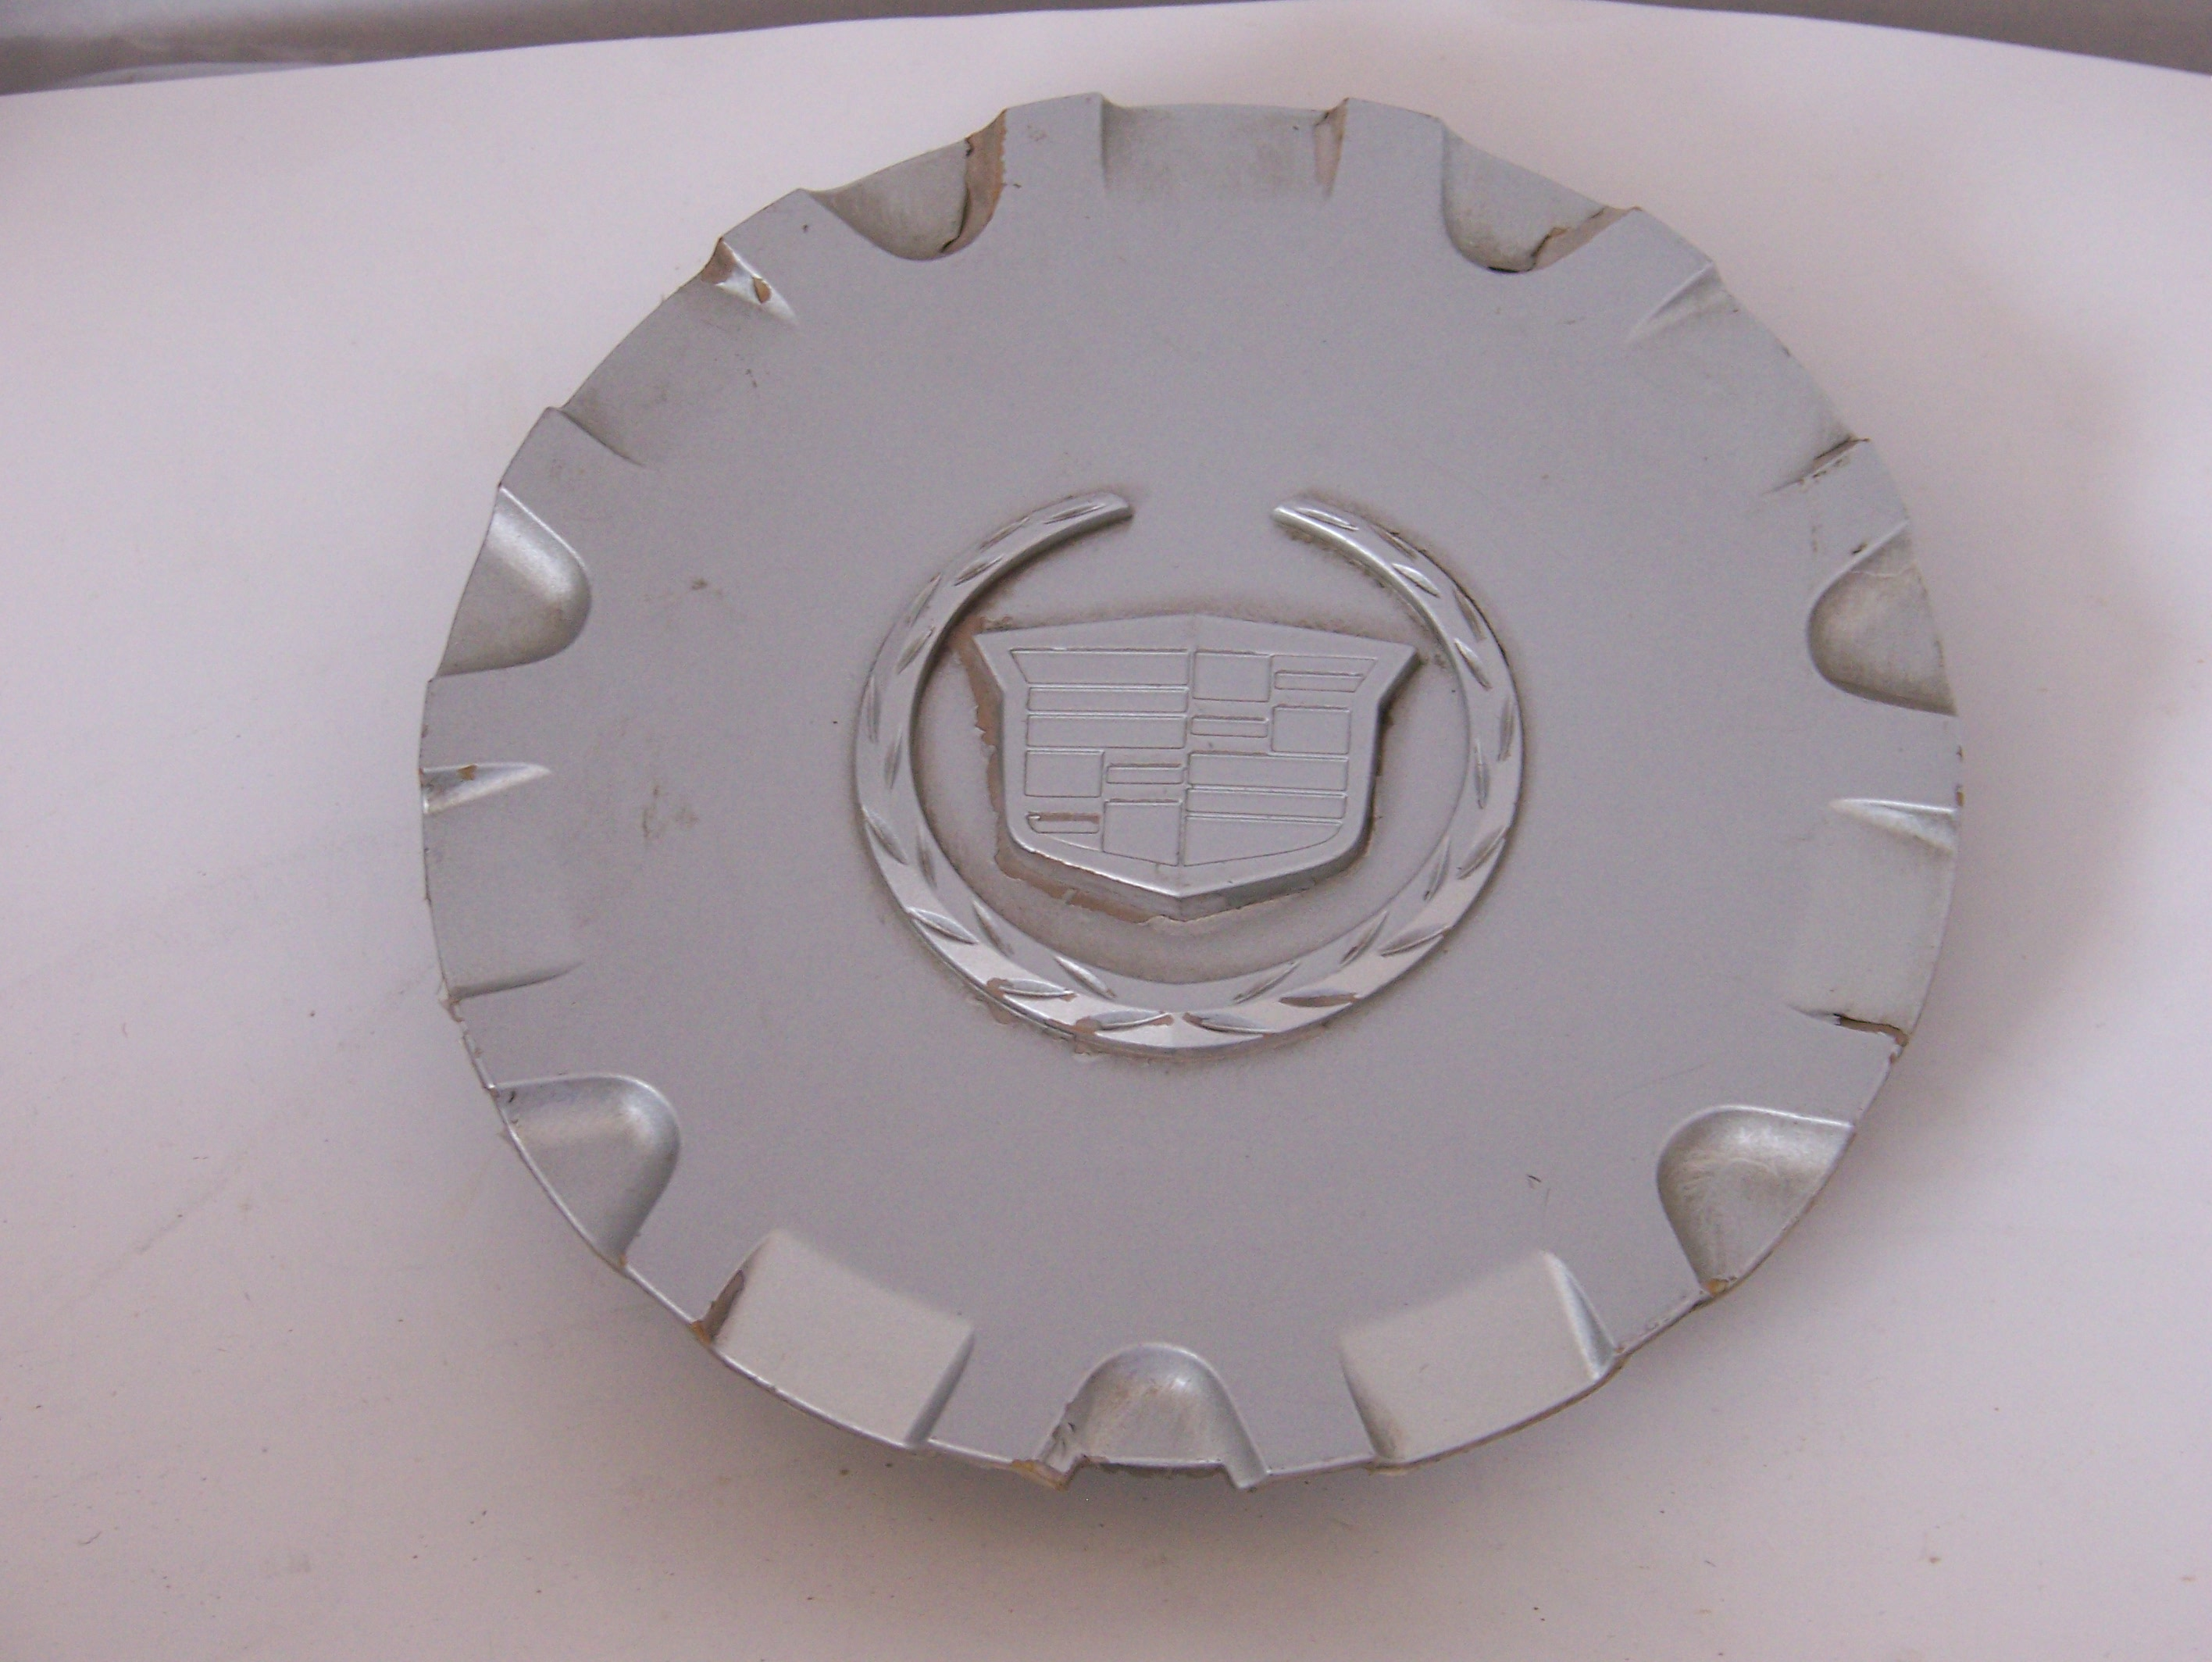 Cadillac SRX 04-05 Center Cap 4580 P/N 9594302